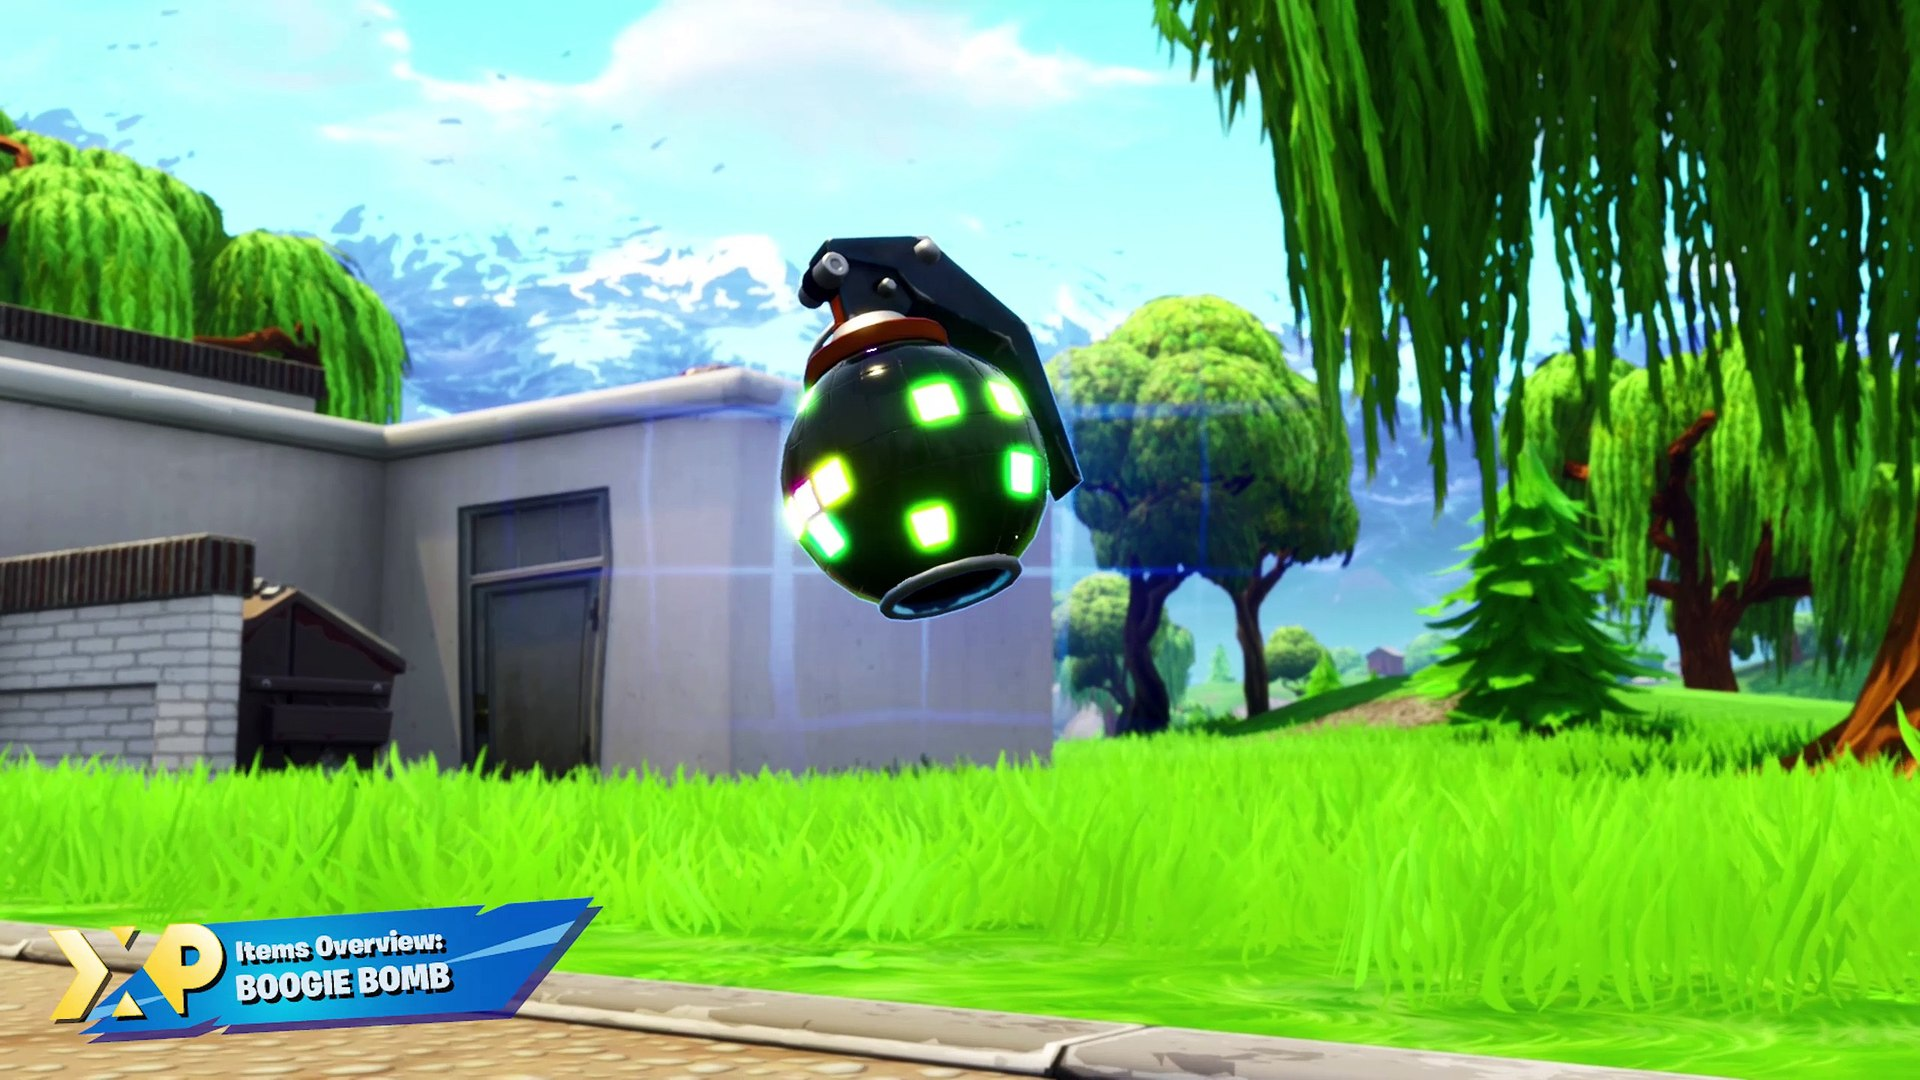 What Is The Fortnite Boogie Bomb Fortnite Battle Royale Items Boogie Bomb Video Dailymotion